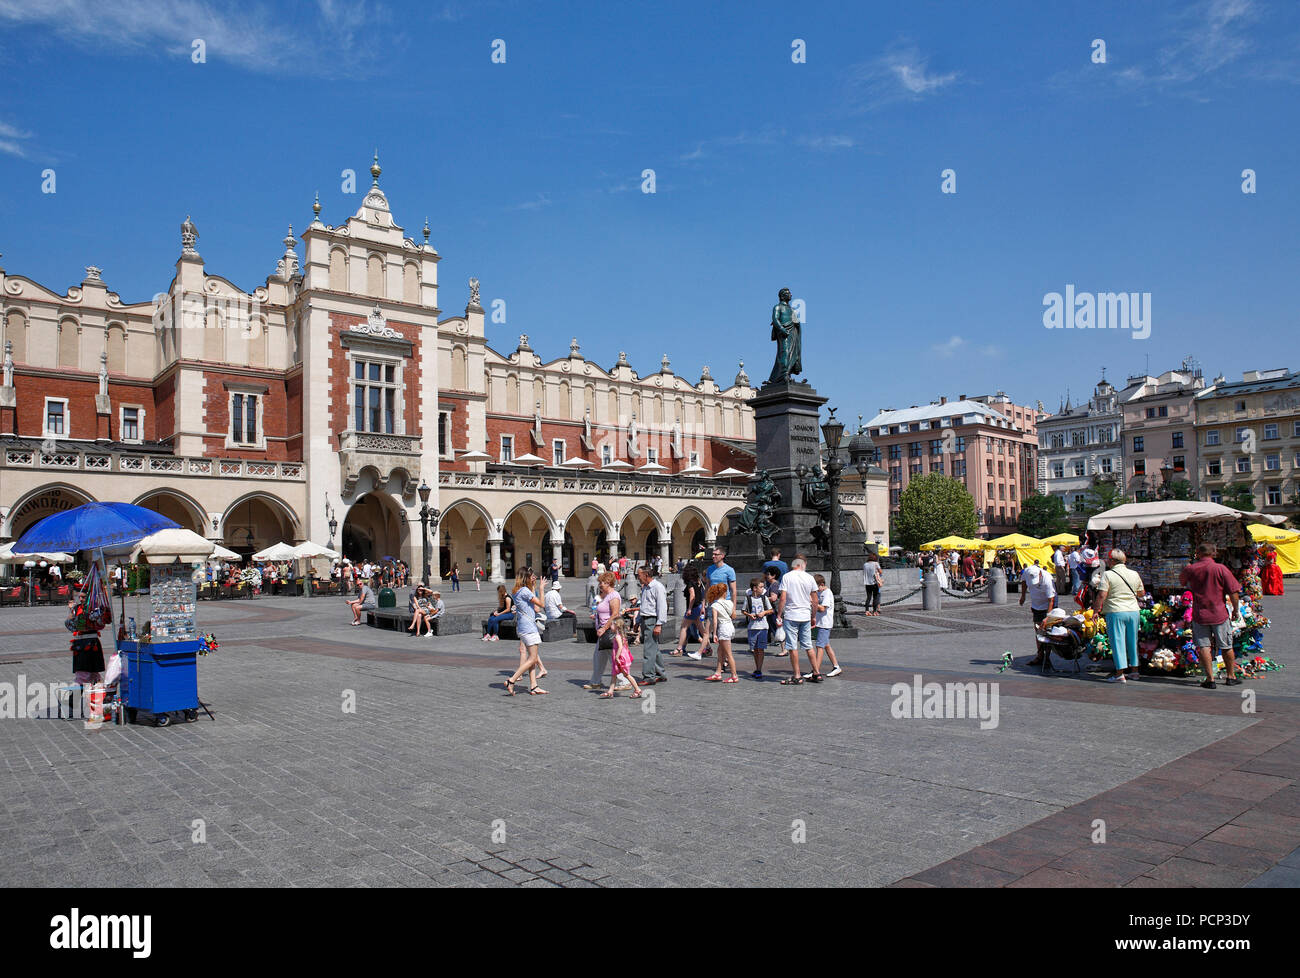 people infront of Cloth Hall. old town krakow, lesser poland, poland, europe Stock Photo